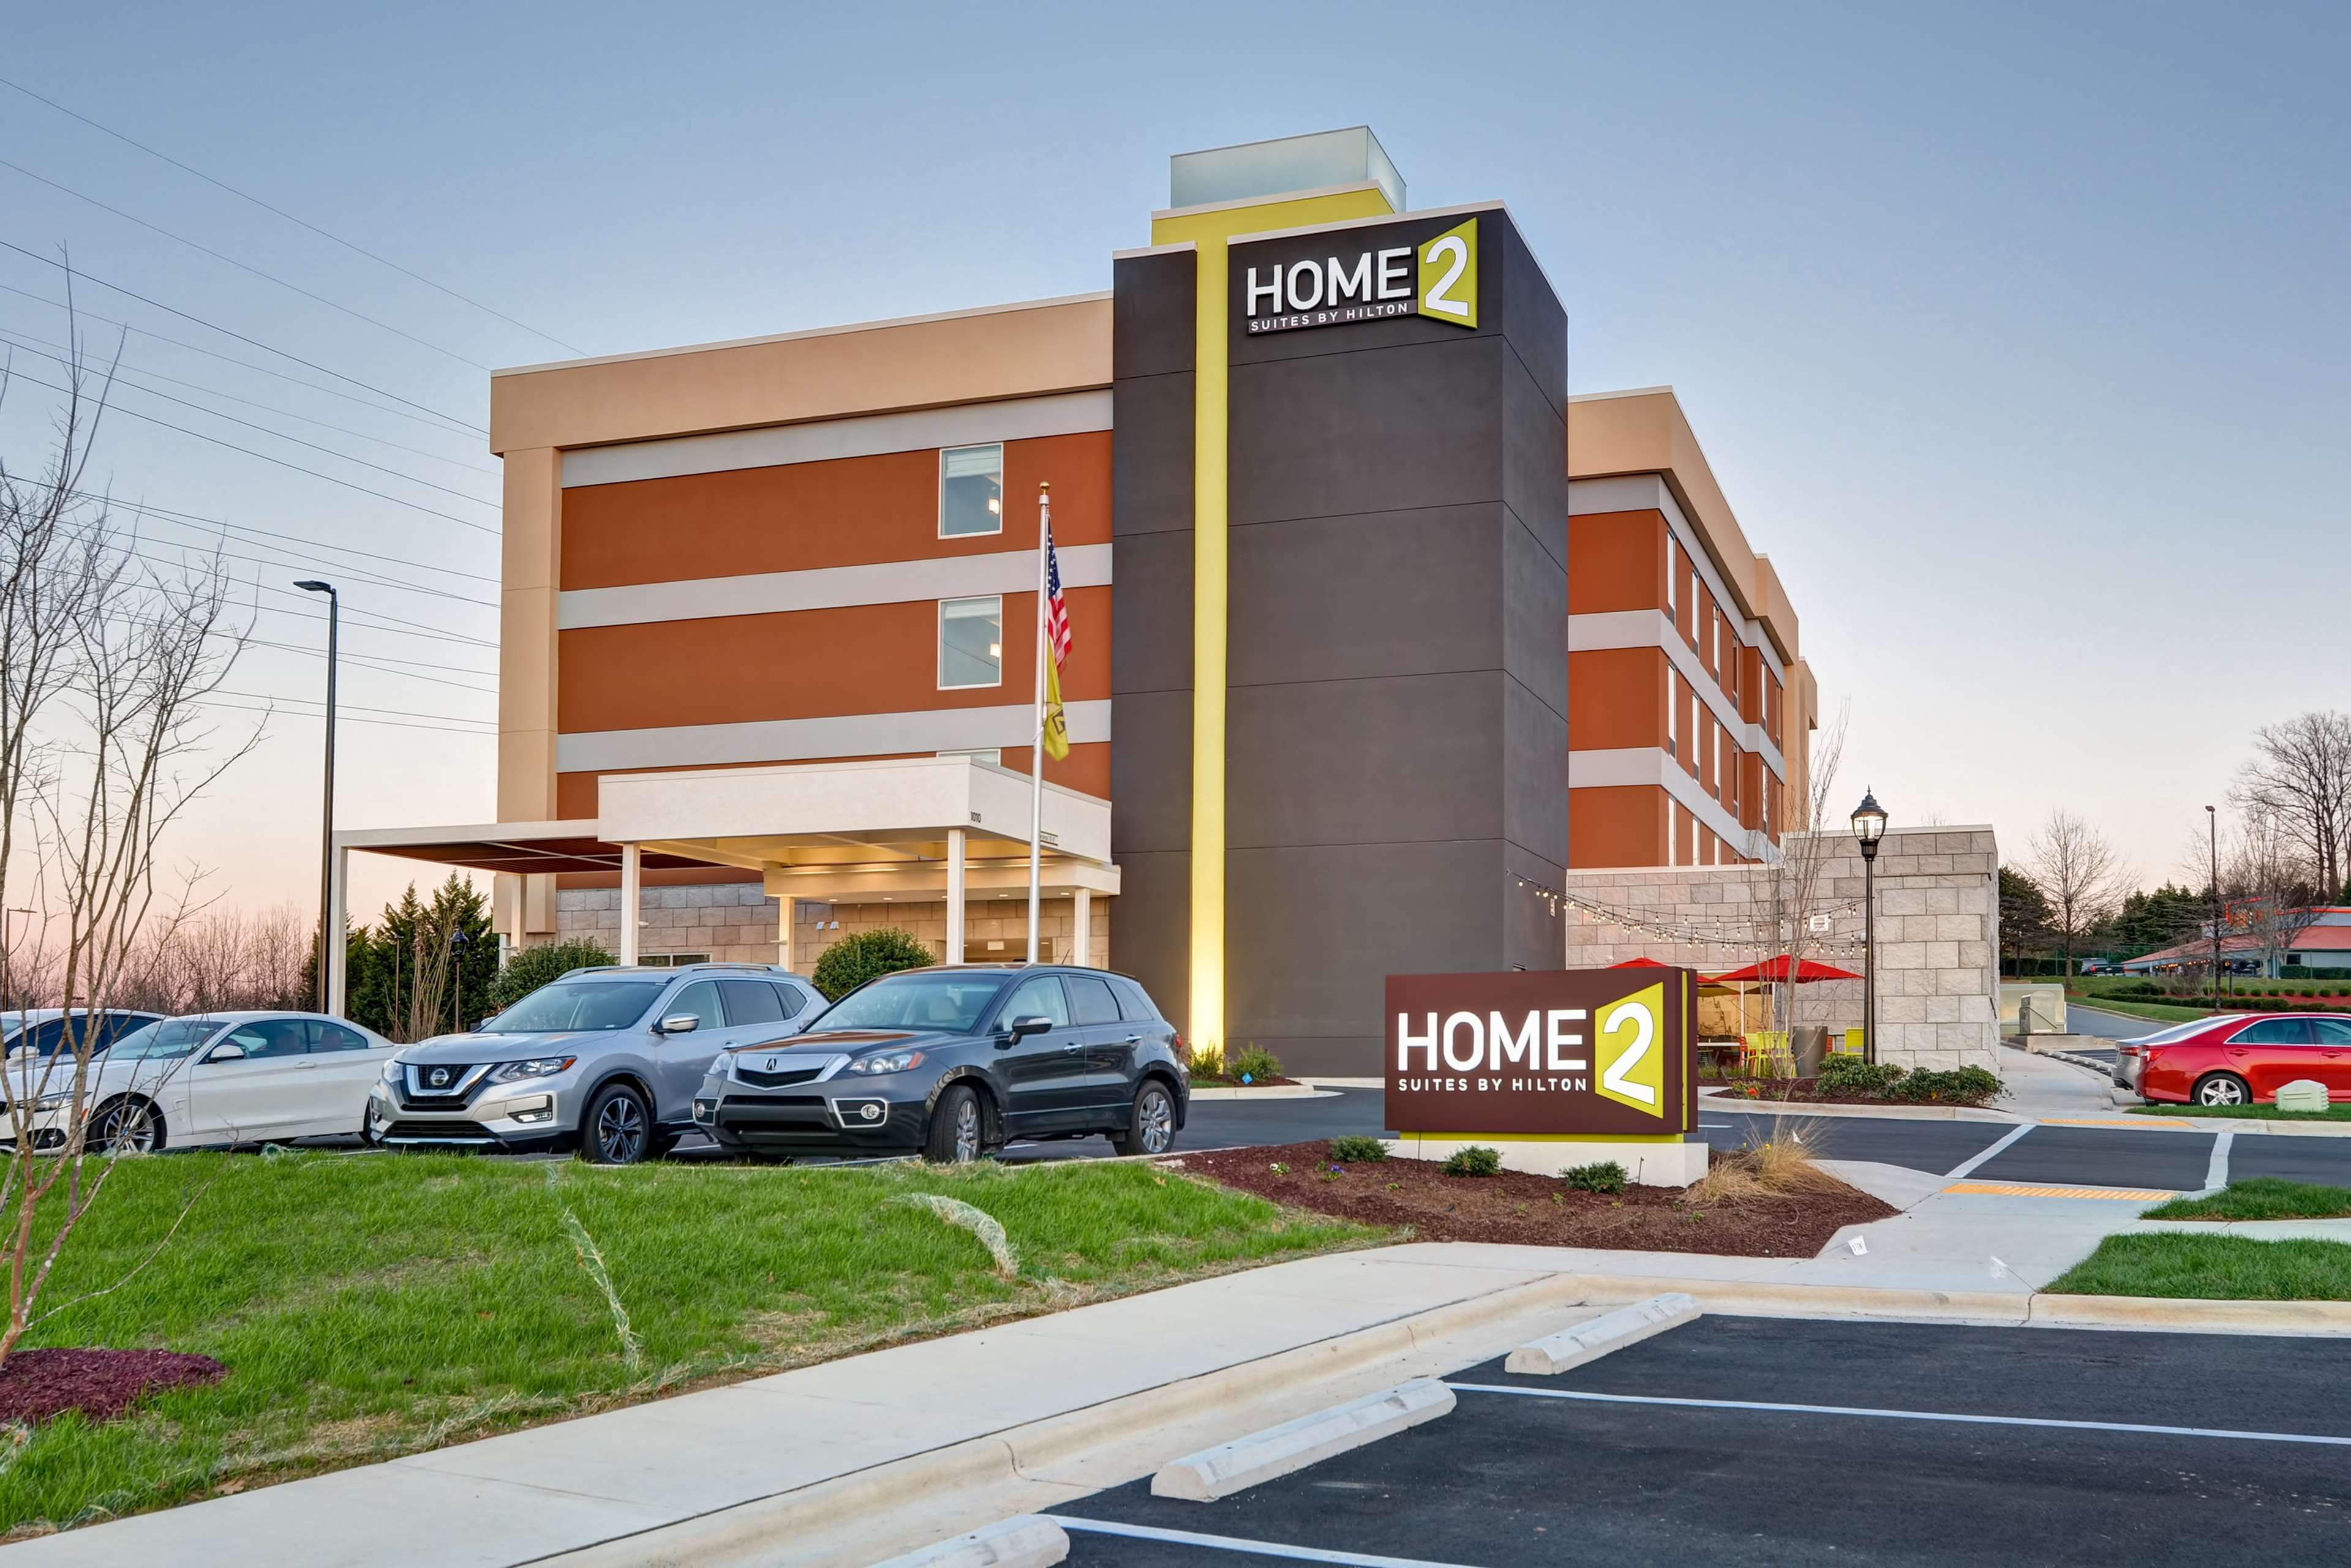 Home2 Suites by Hilton Winston-Salem Hanes Mall image 5